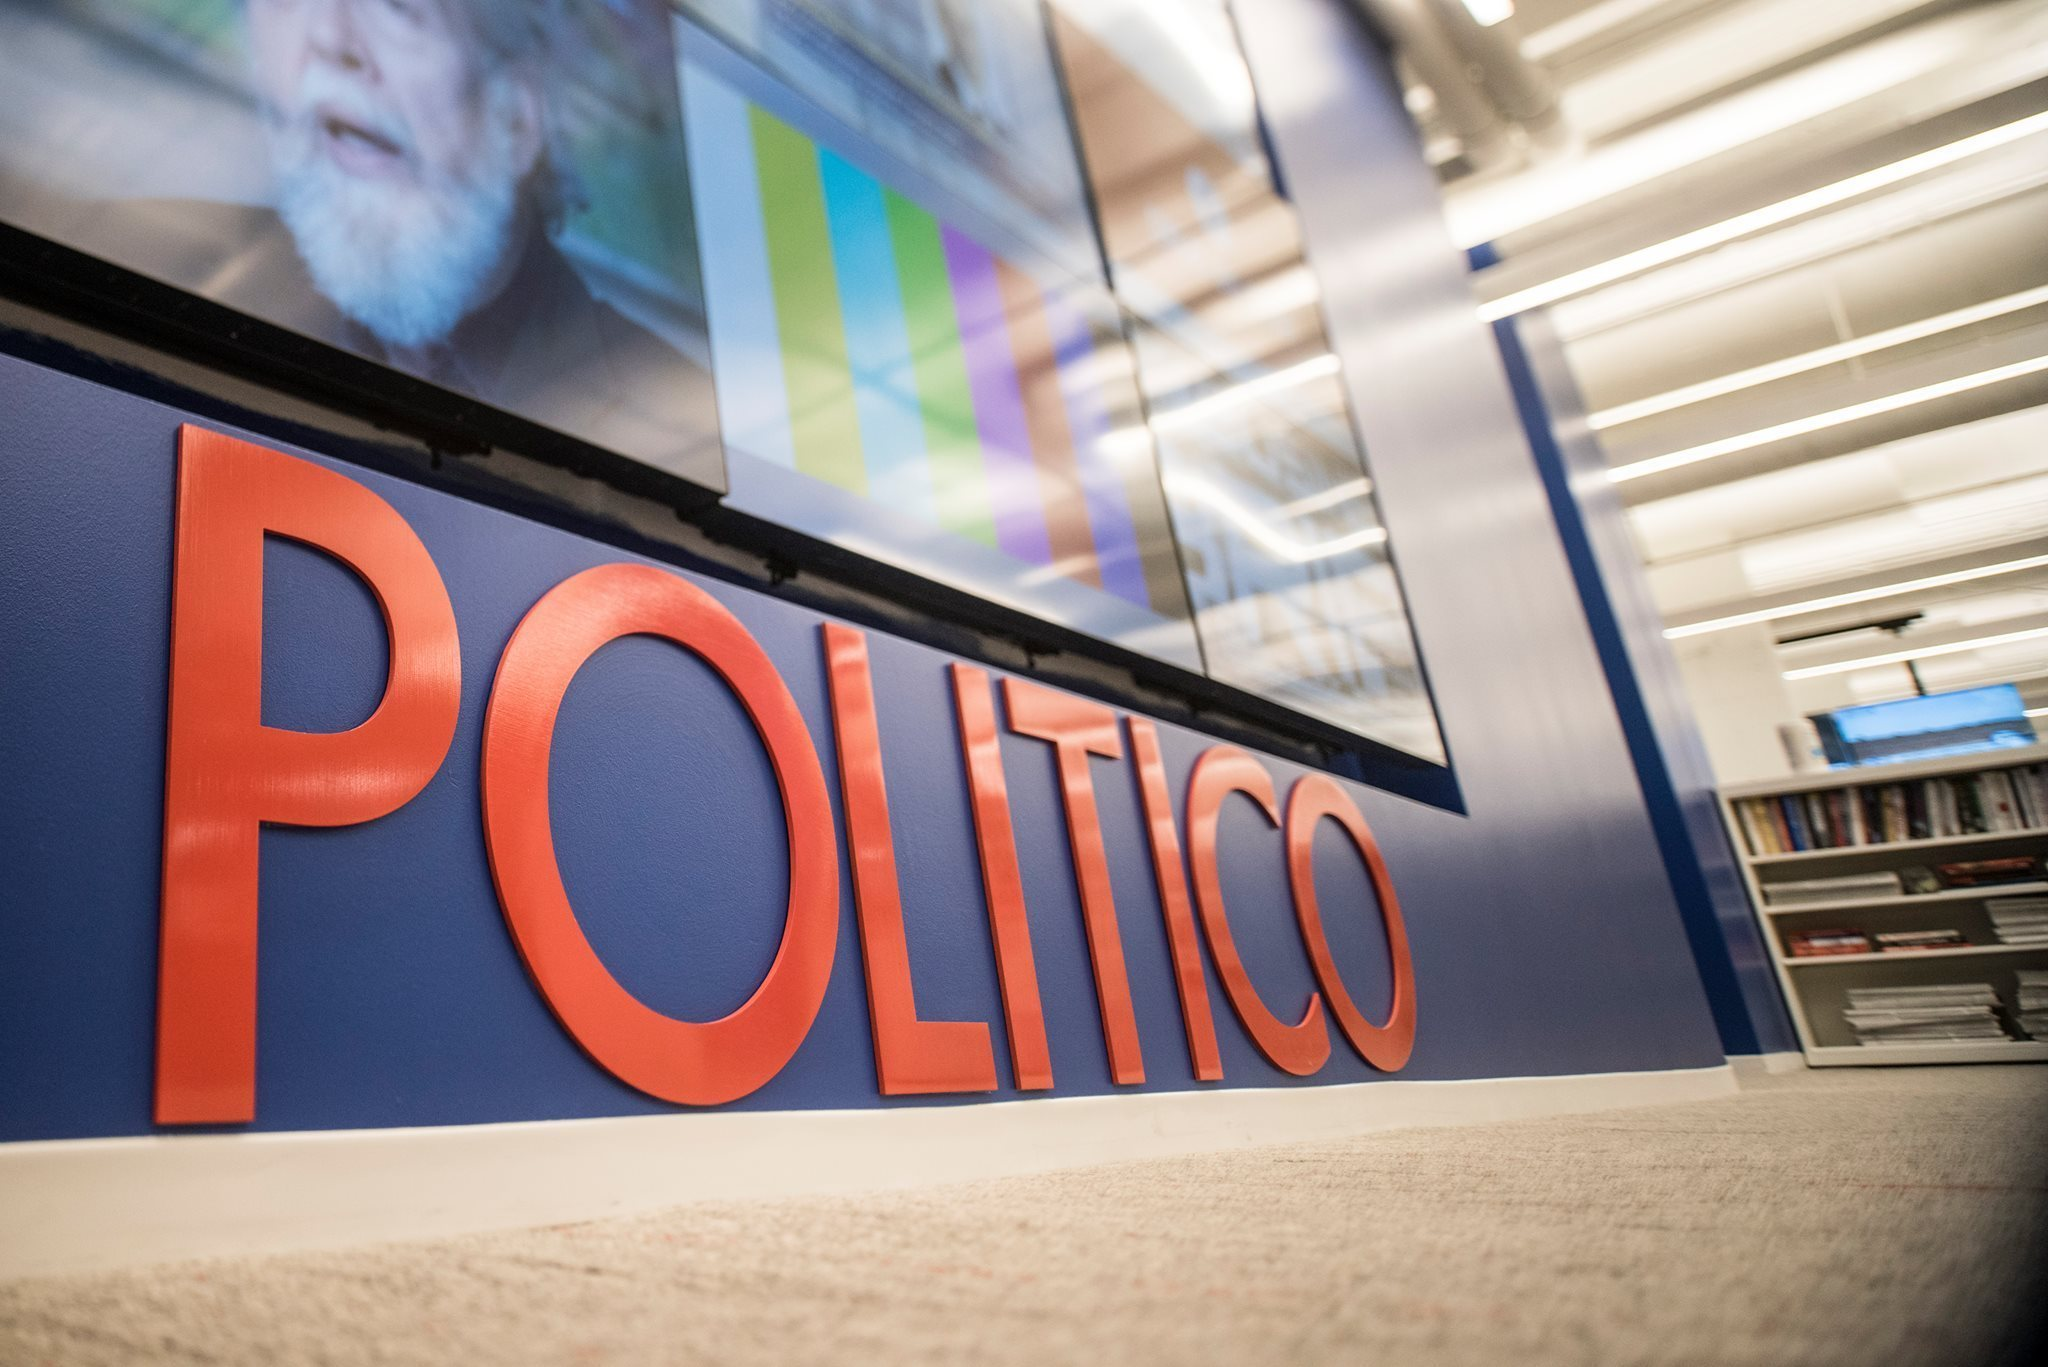 Analysis: What Politico's implosion tells us about the media business